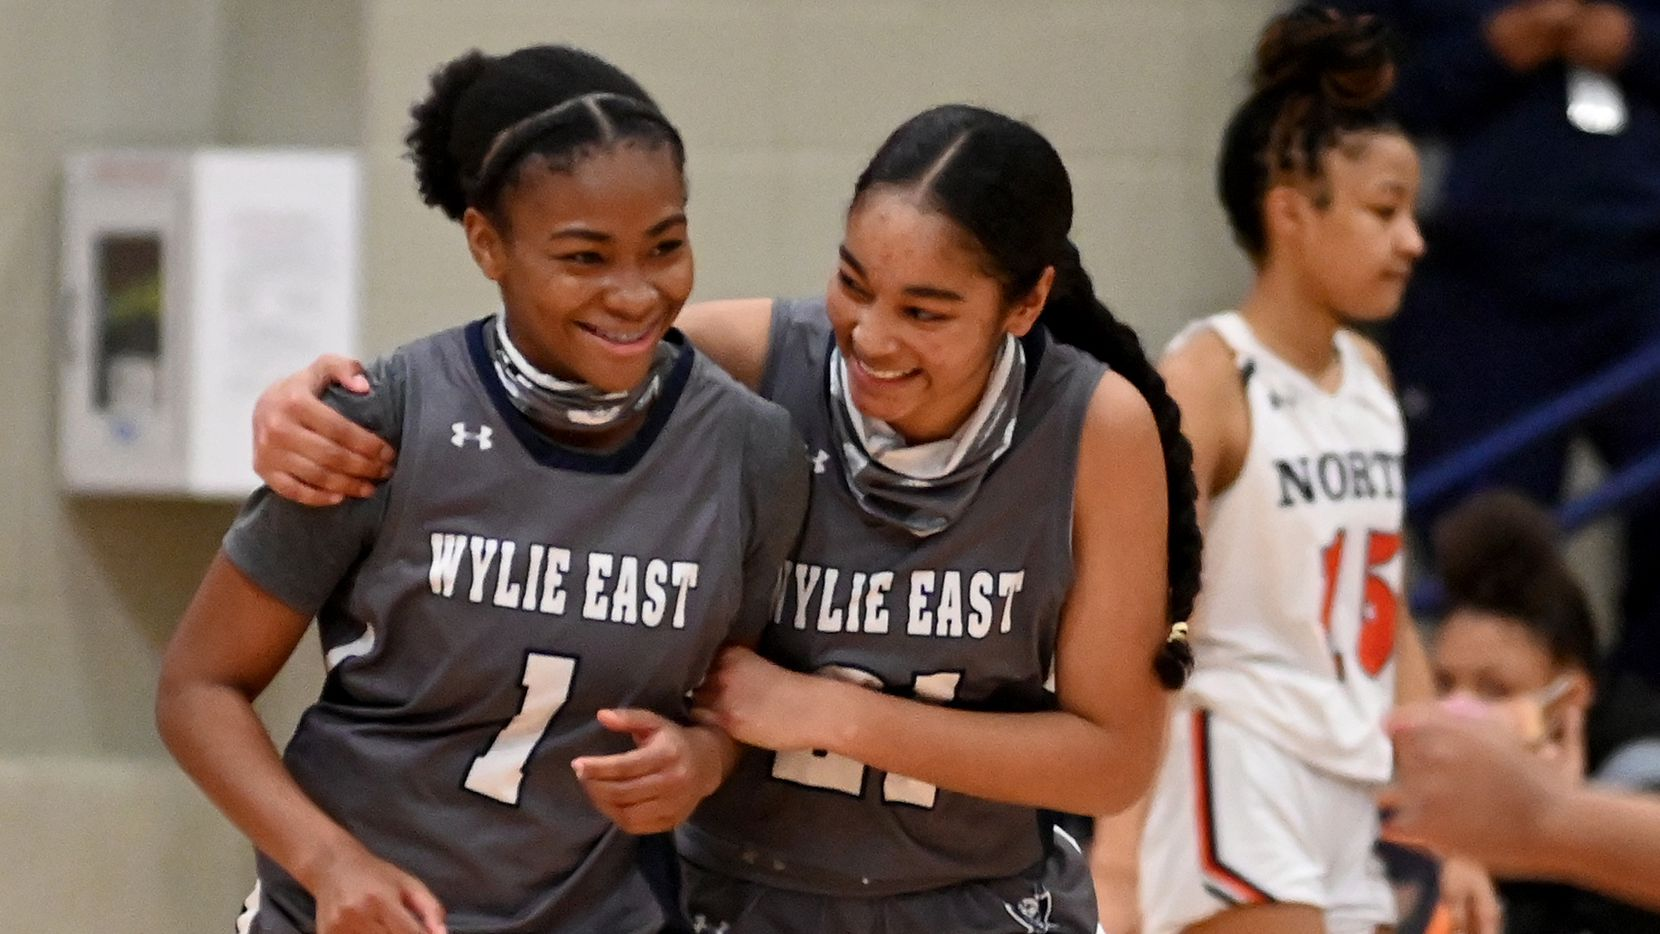 Wylie East's Taylor Dailey (1) and Aleena Dawkins celebrate their double overtime win during a girls basketball game between Wylie East and McKinney North, Tuesday, Feb. 2, 2020, in McKinney, Texas.